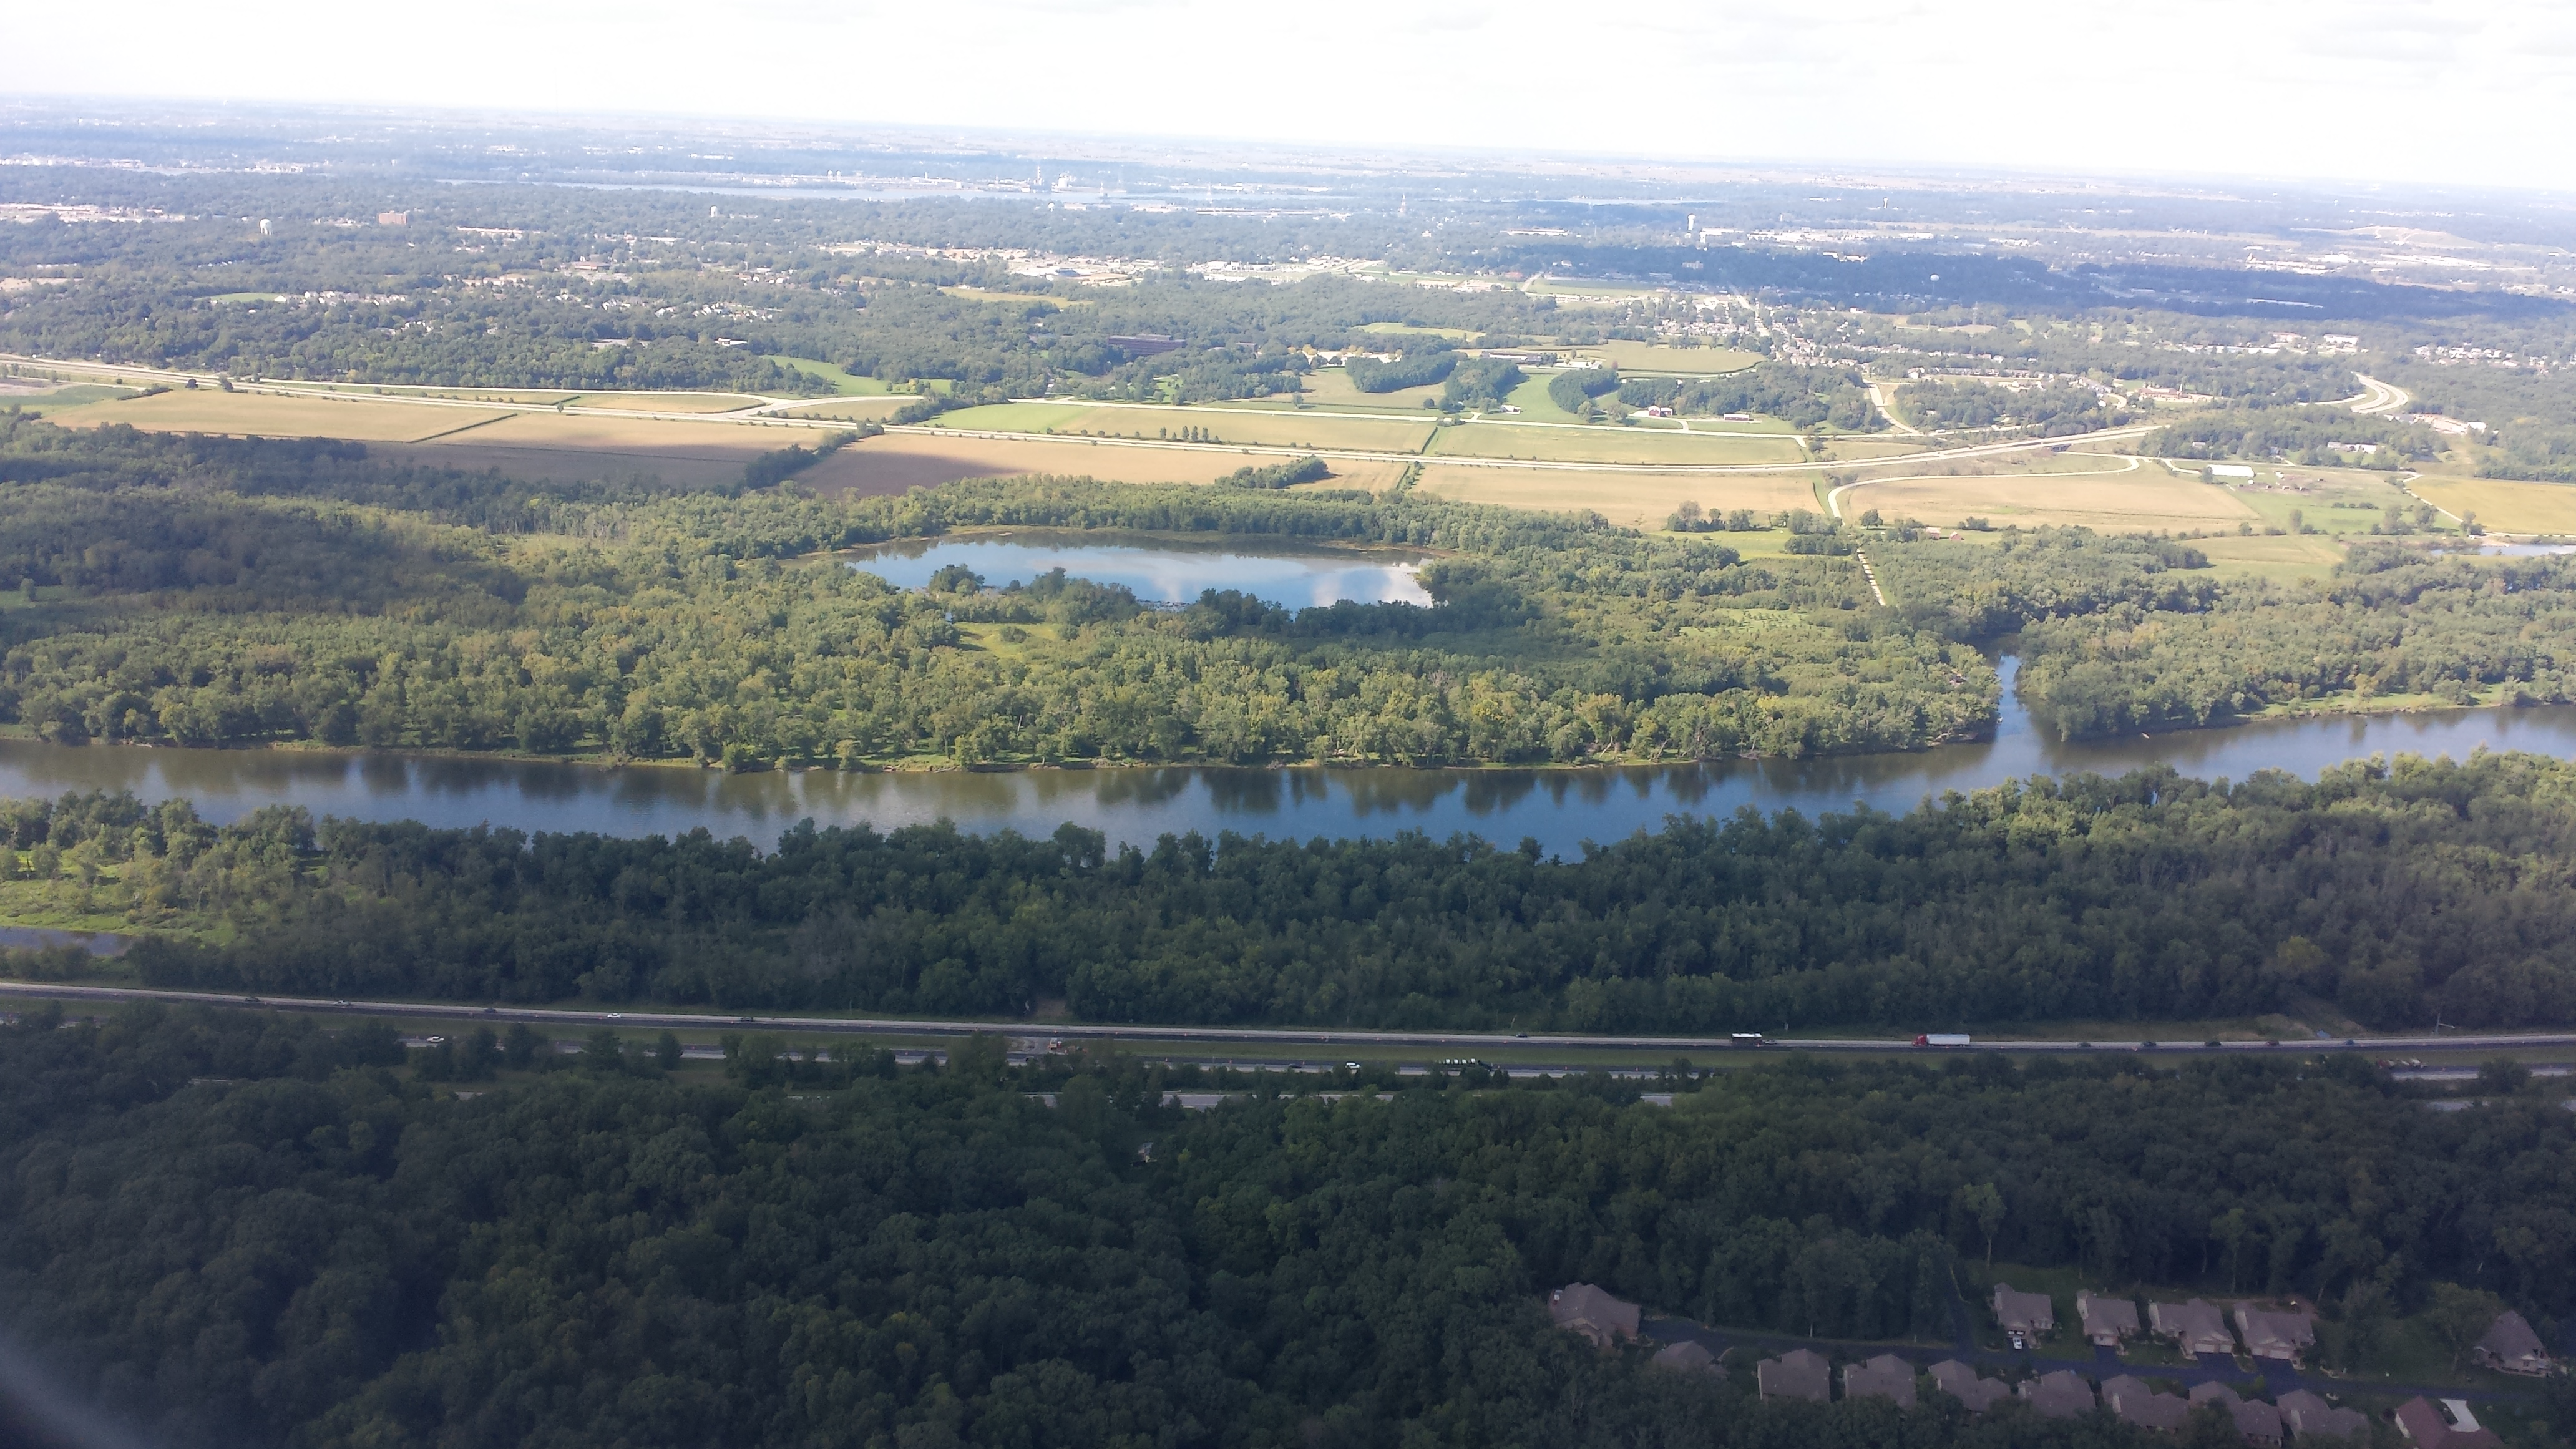 Moline from the air